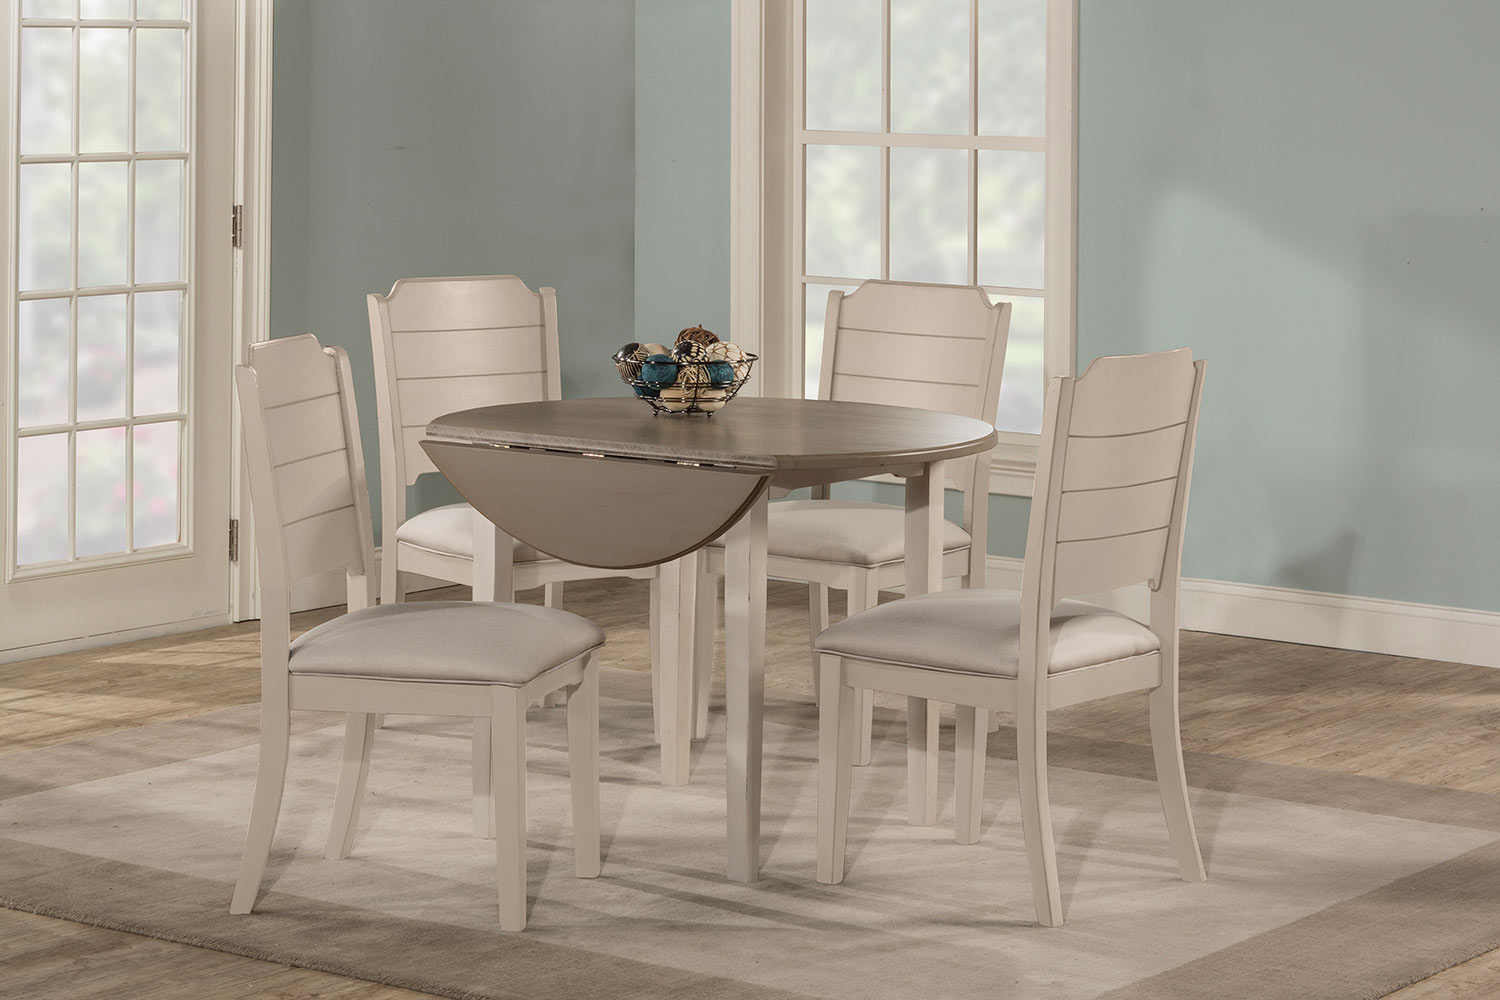 Hillsdale Clarion Round Dining Set - Gray/White